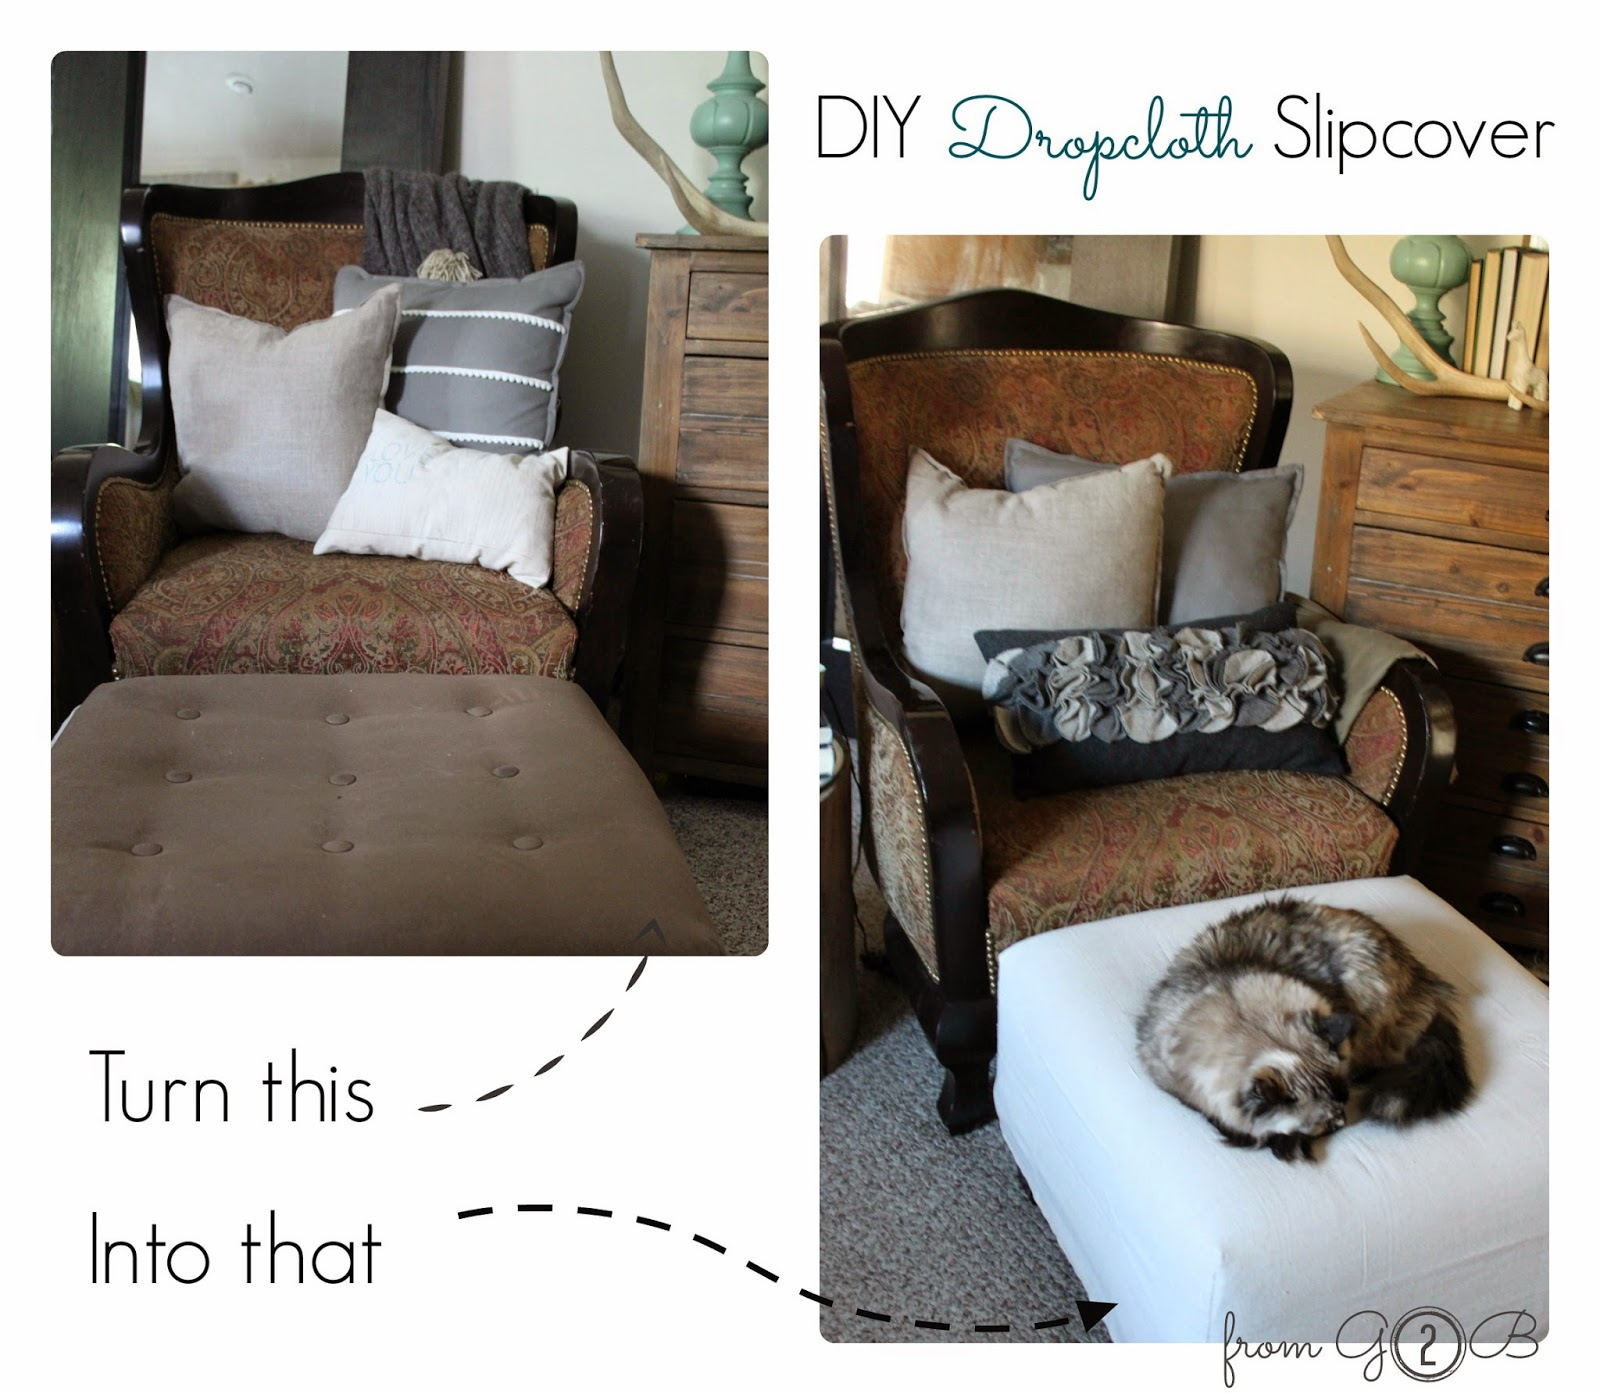 DIY-Dropcloth-Slipcover